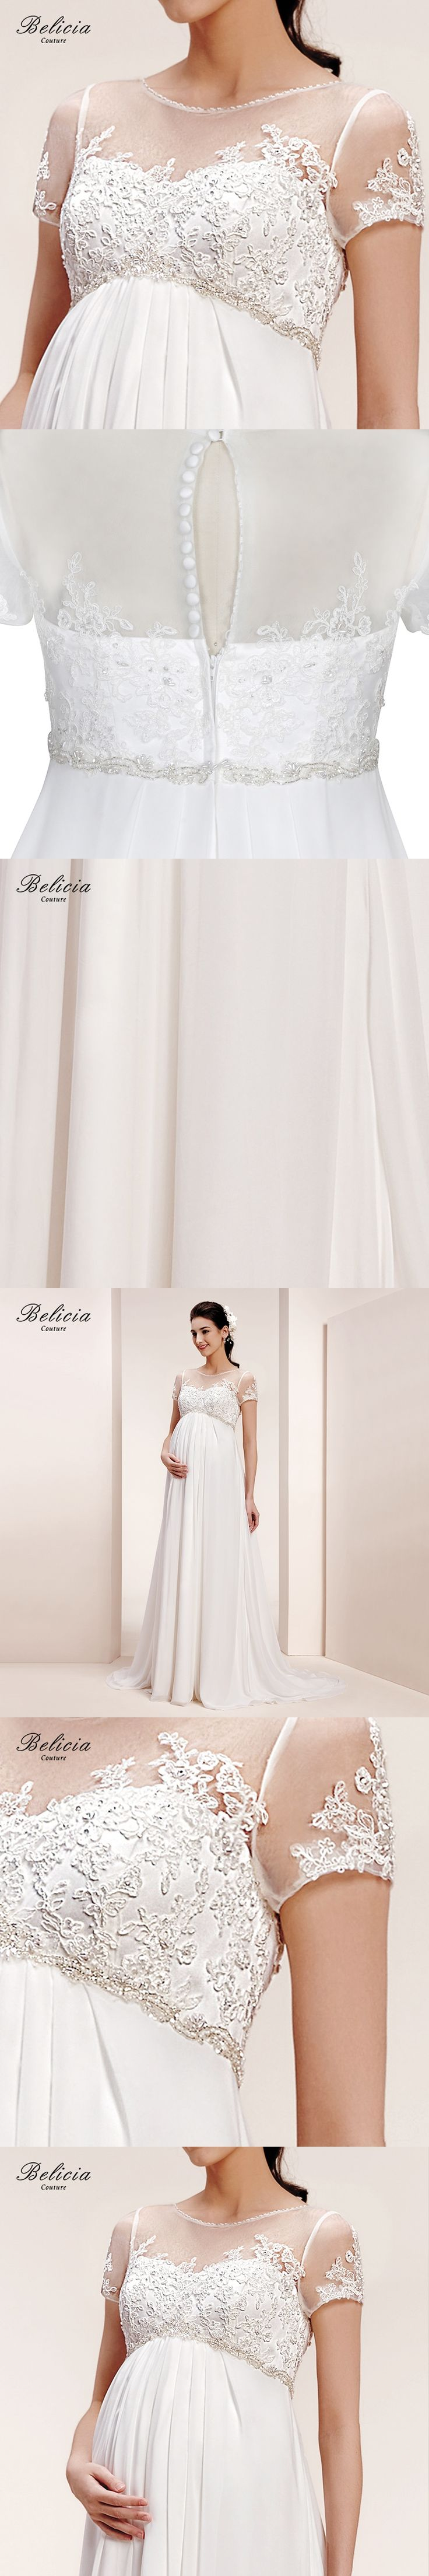 Belicia Couture Maternity Wedding Dress Lace Appliques Short Sleeves Tulle Bridal Gown for Pregnant Women  A-Line Button Back